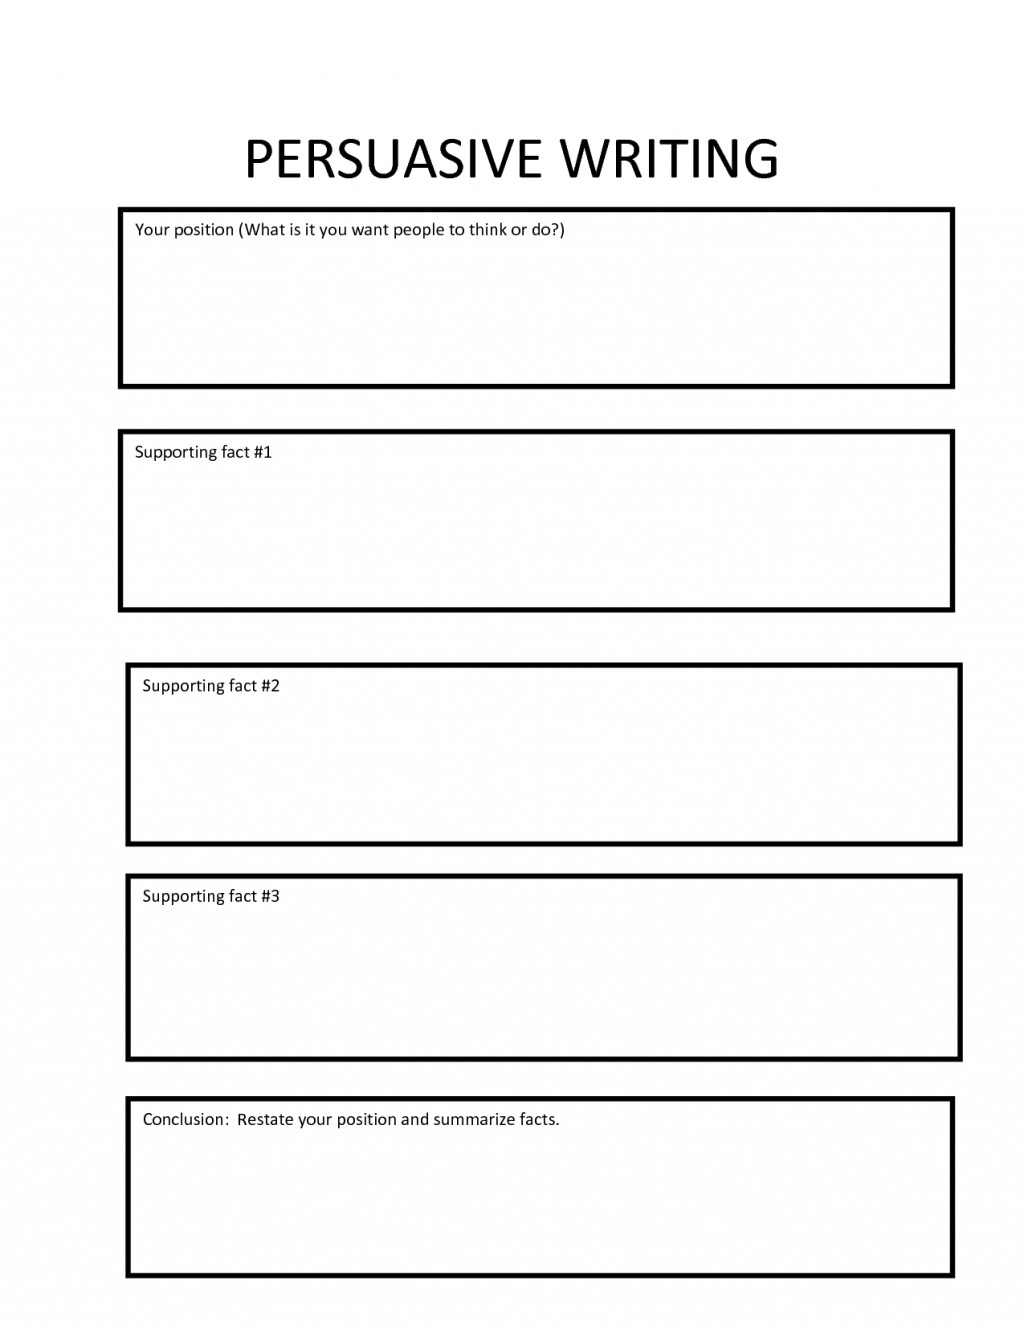 004 Persuasive Essay Graphic Organizer Amazing 3rd Grade 5th Middle School Large